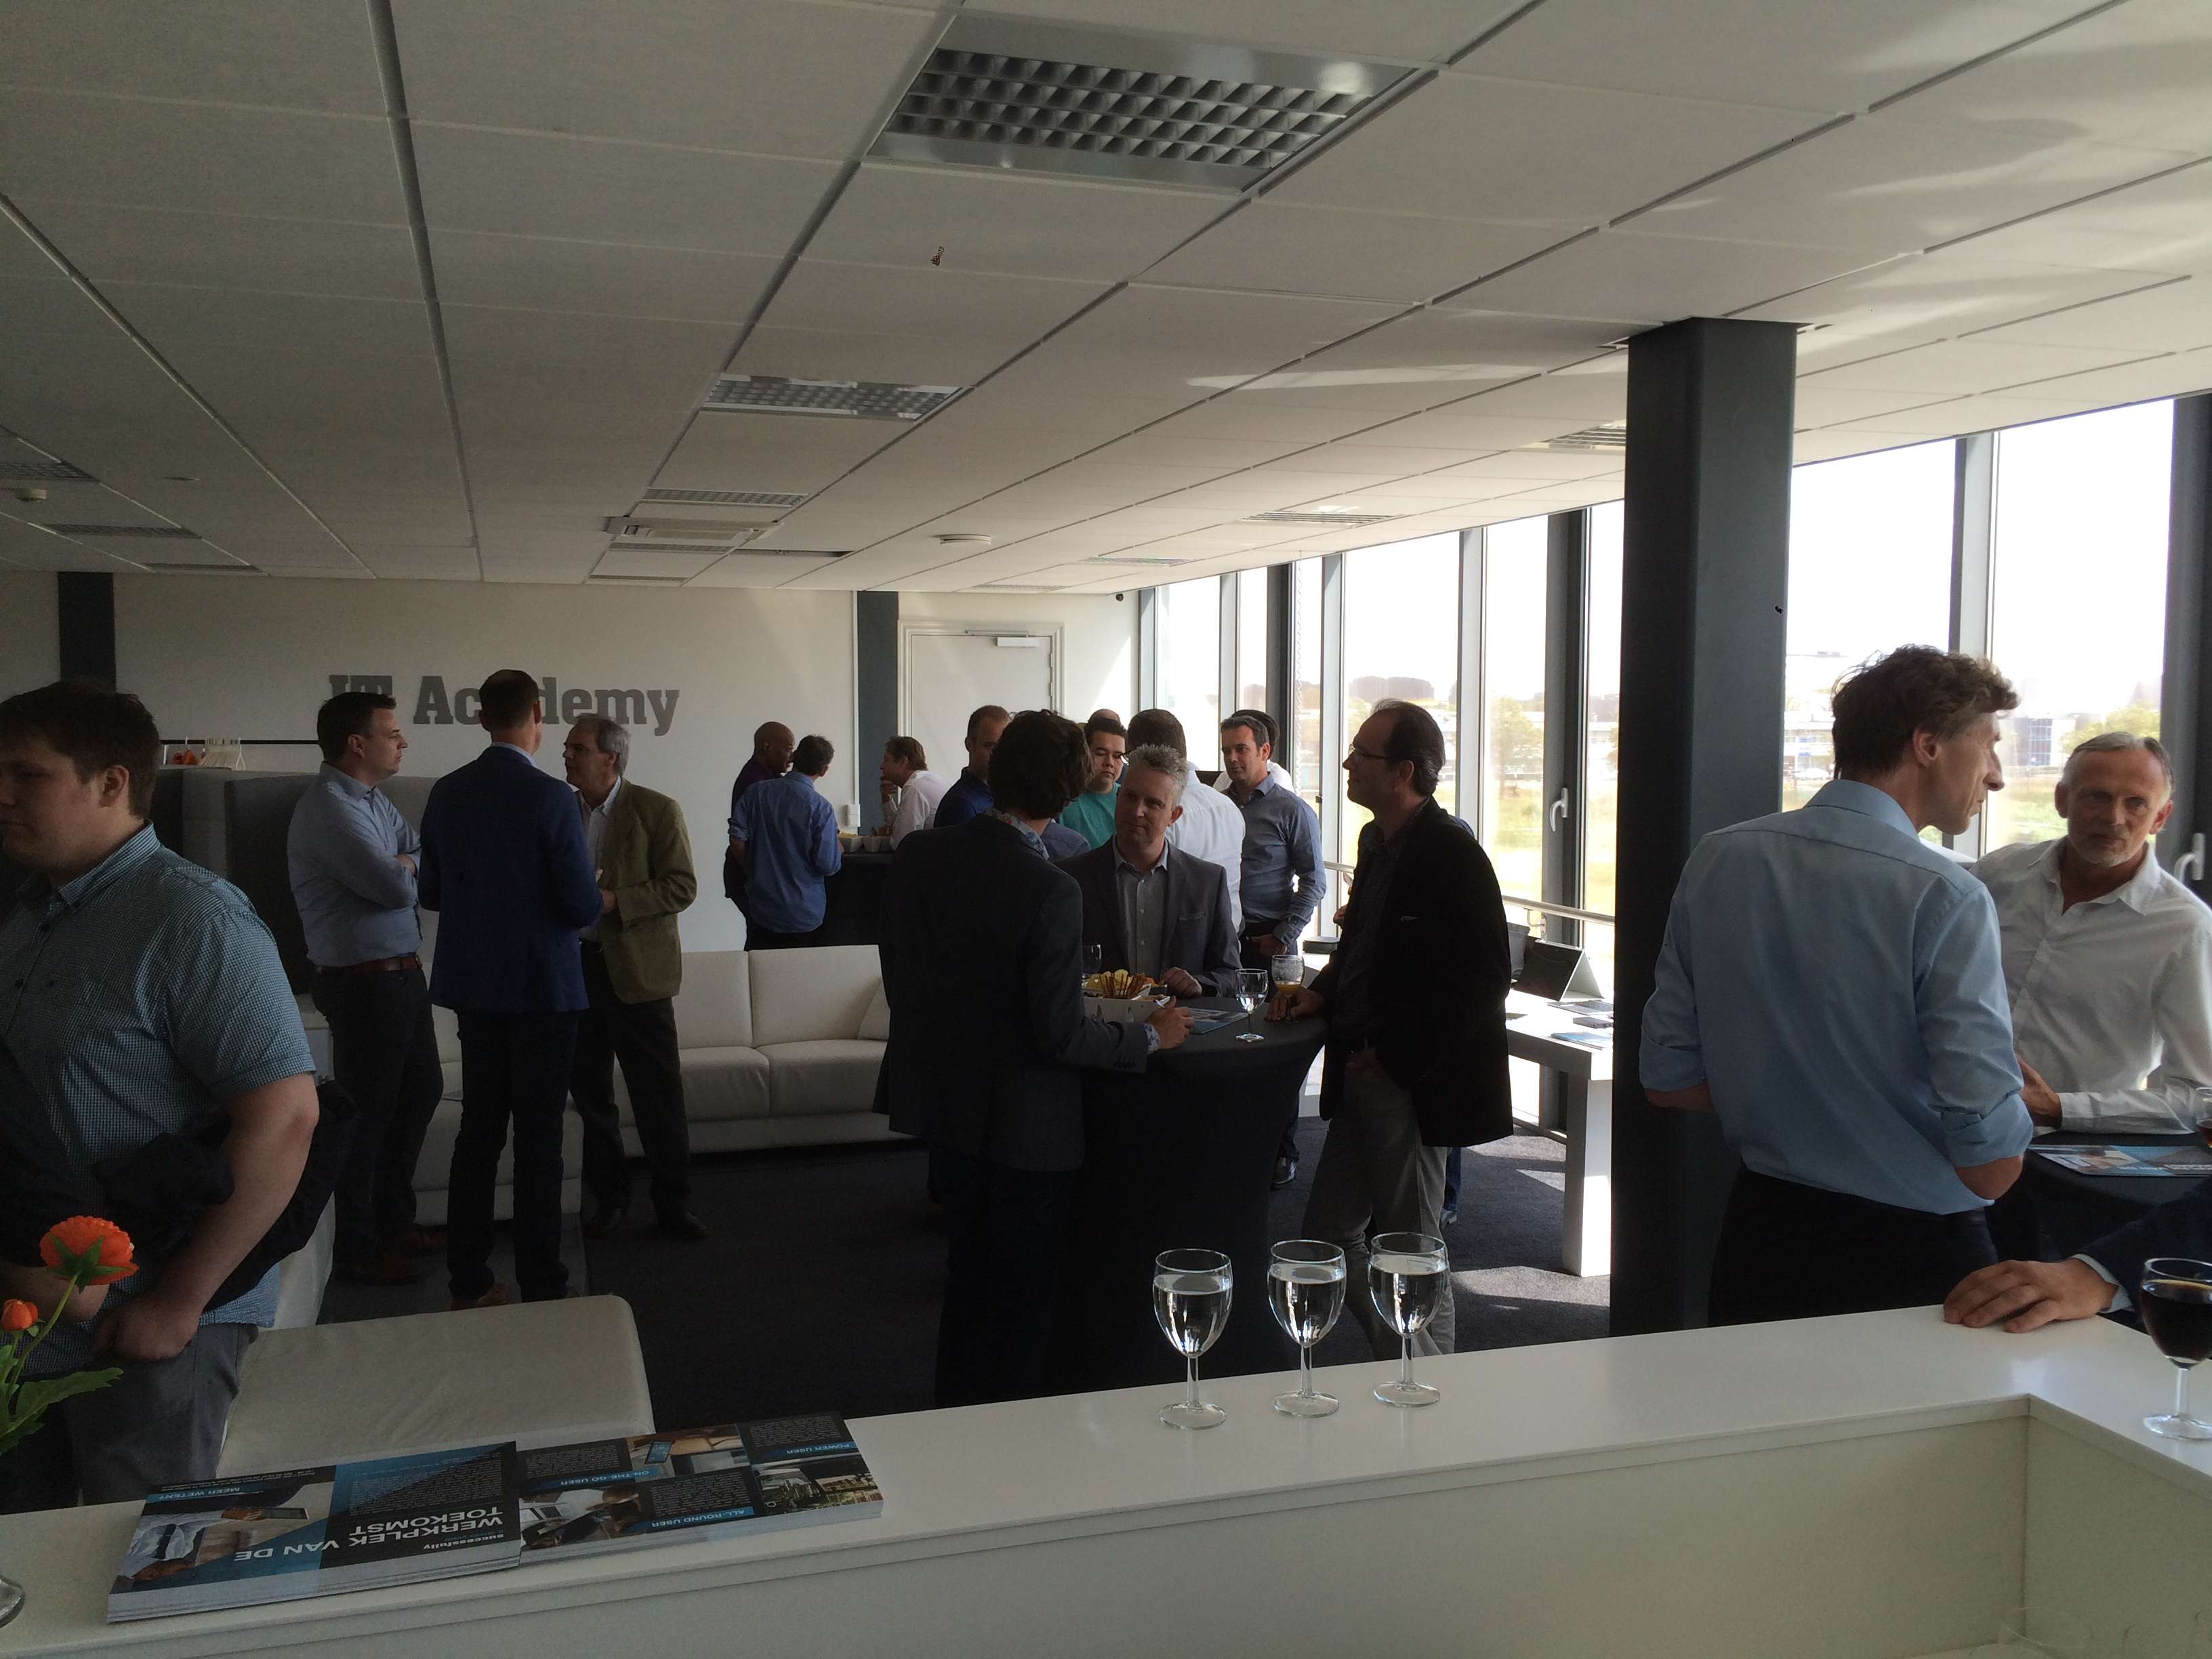 Het Future of IT event was een succes